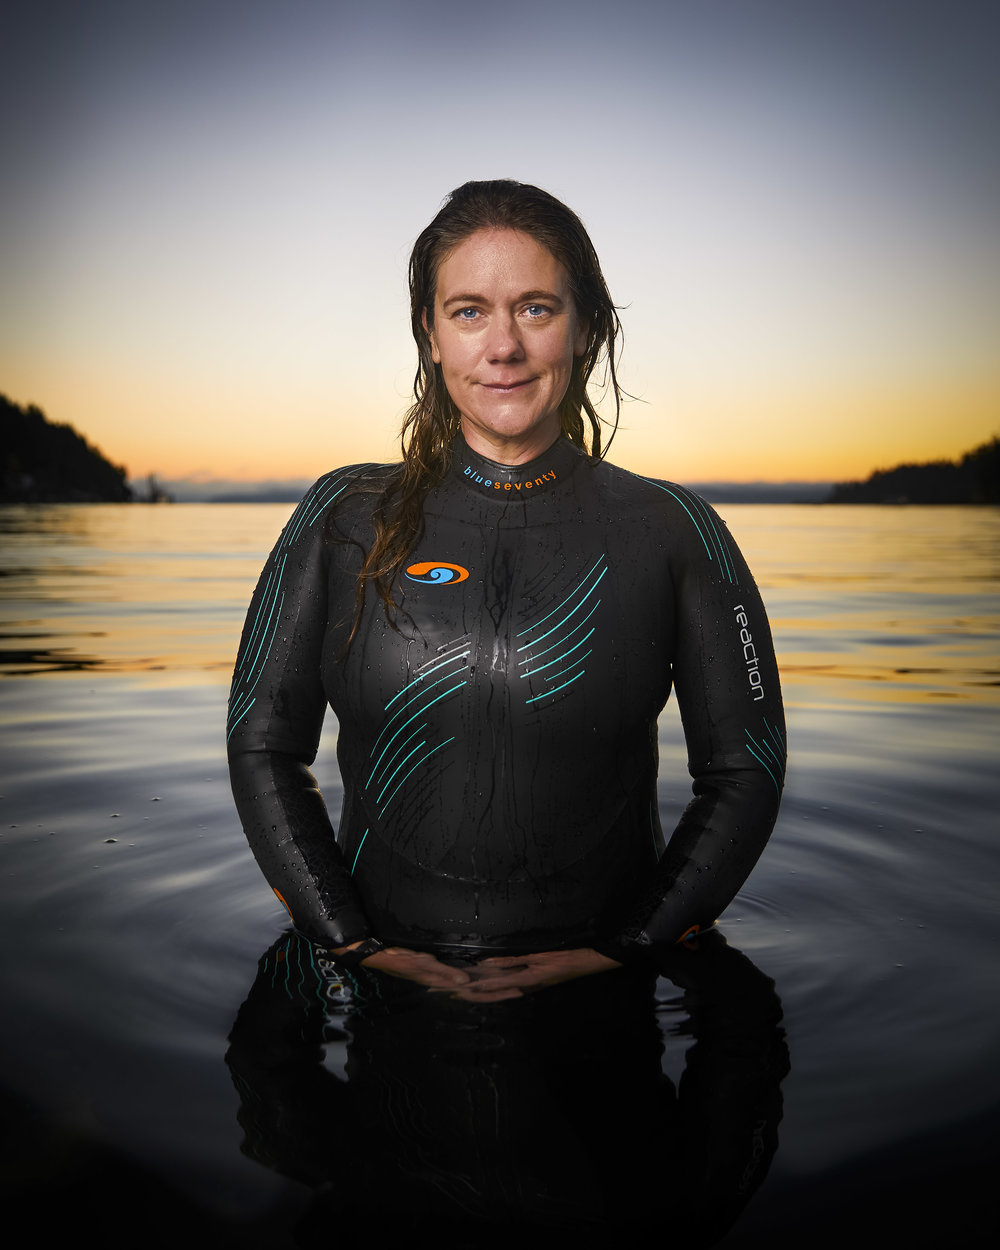 Kelly Adamson Danielson, a University of Puget Sound alumna and part of the first all women's team to win the 750-mile race to Alaska.